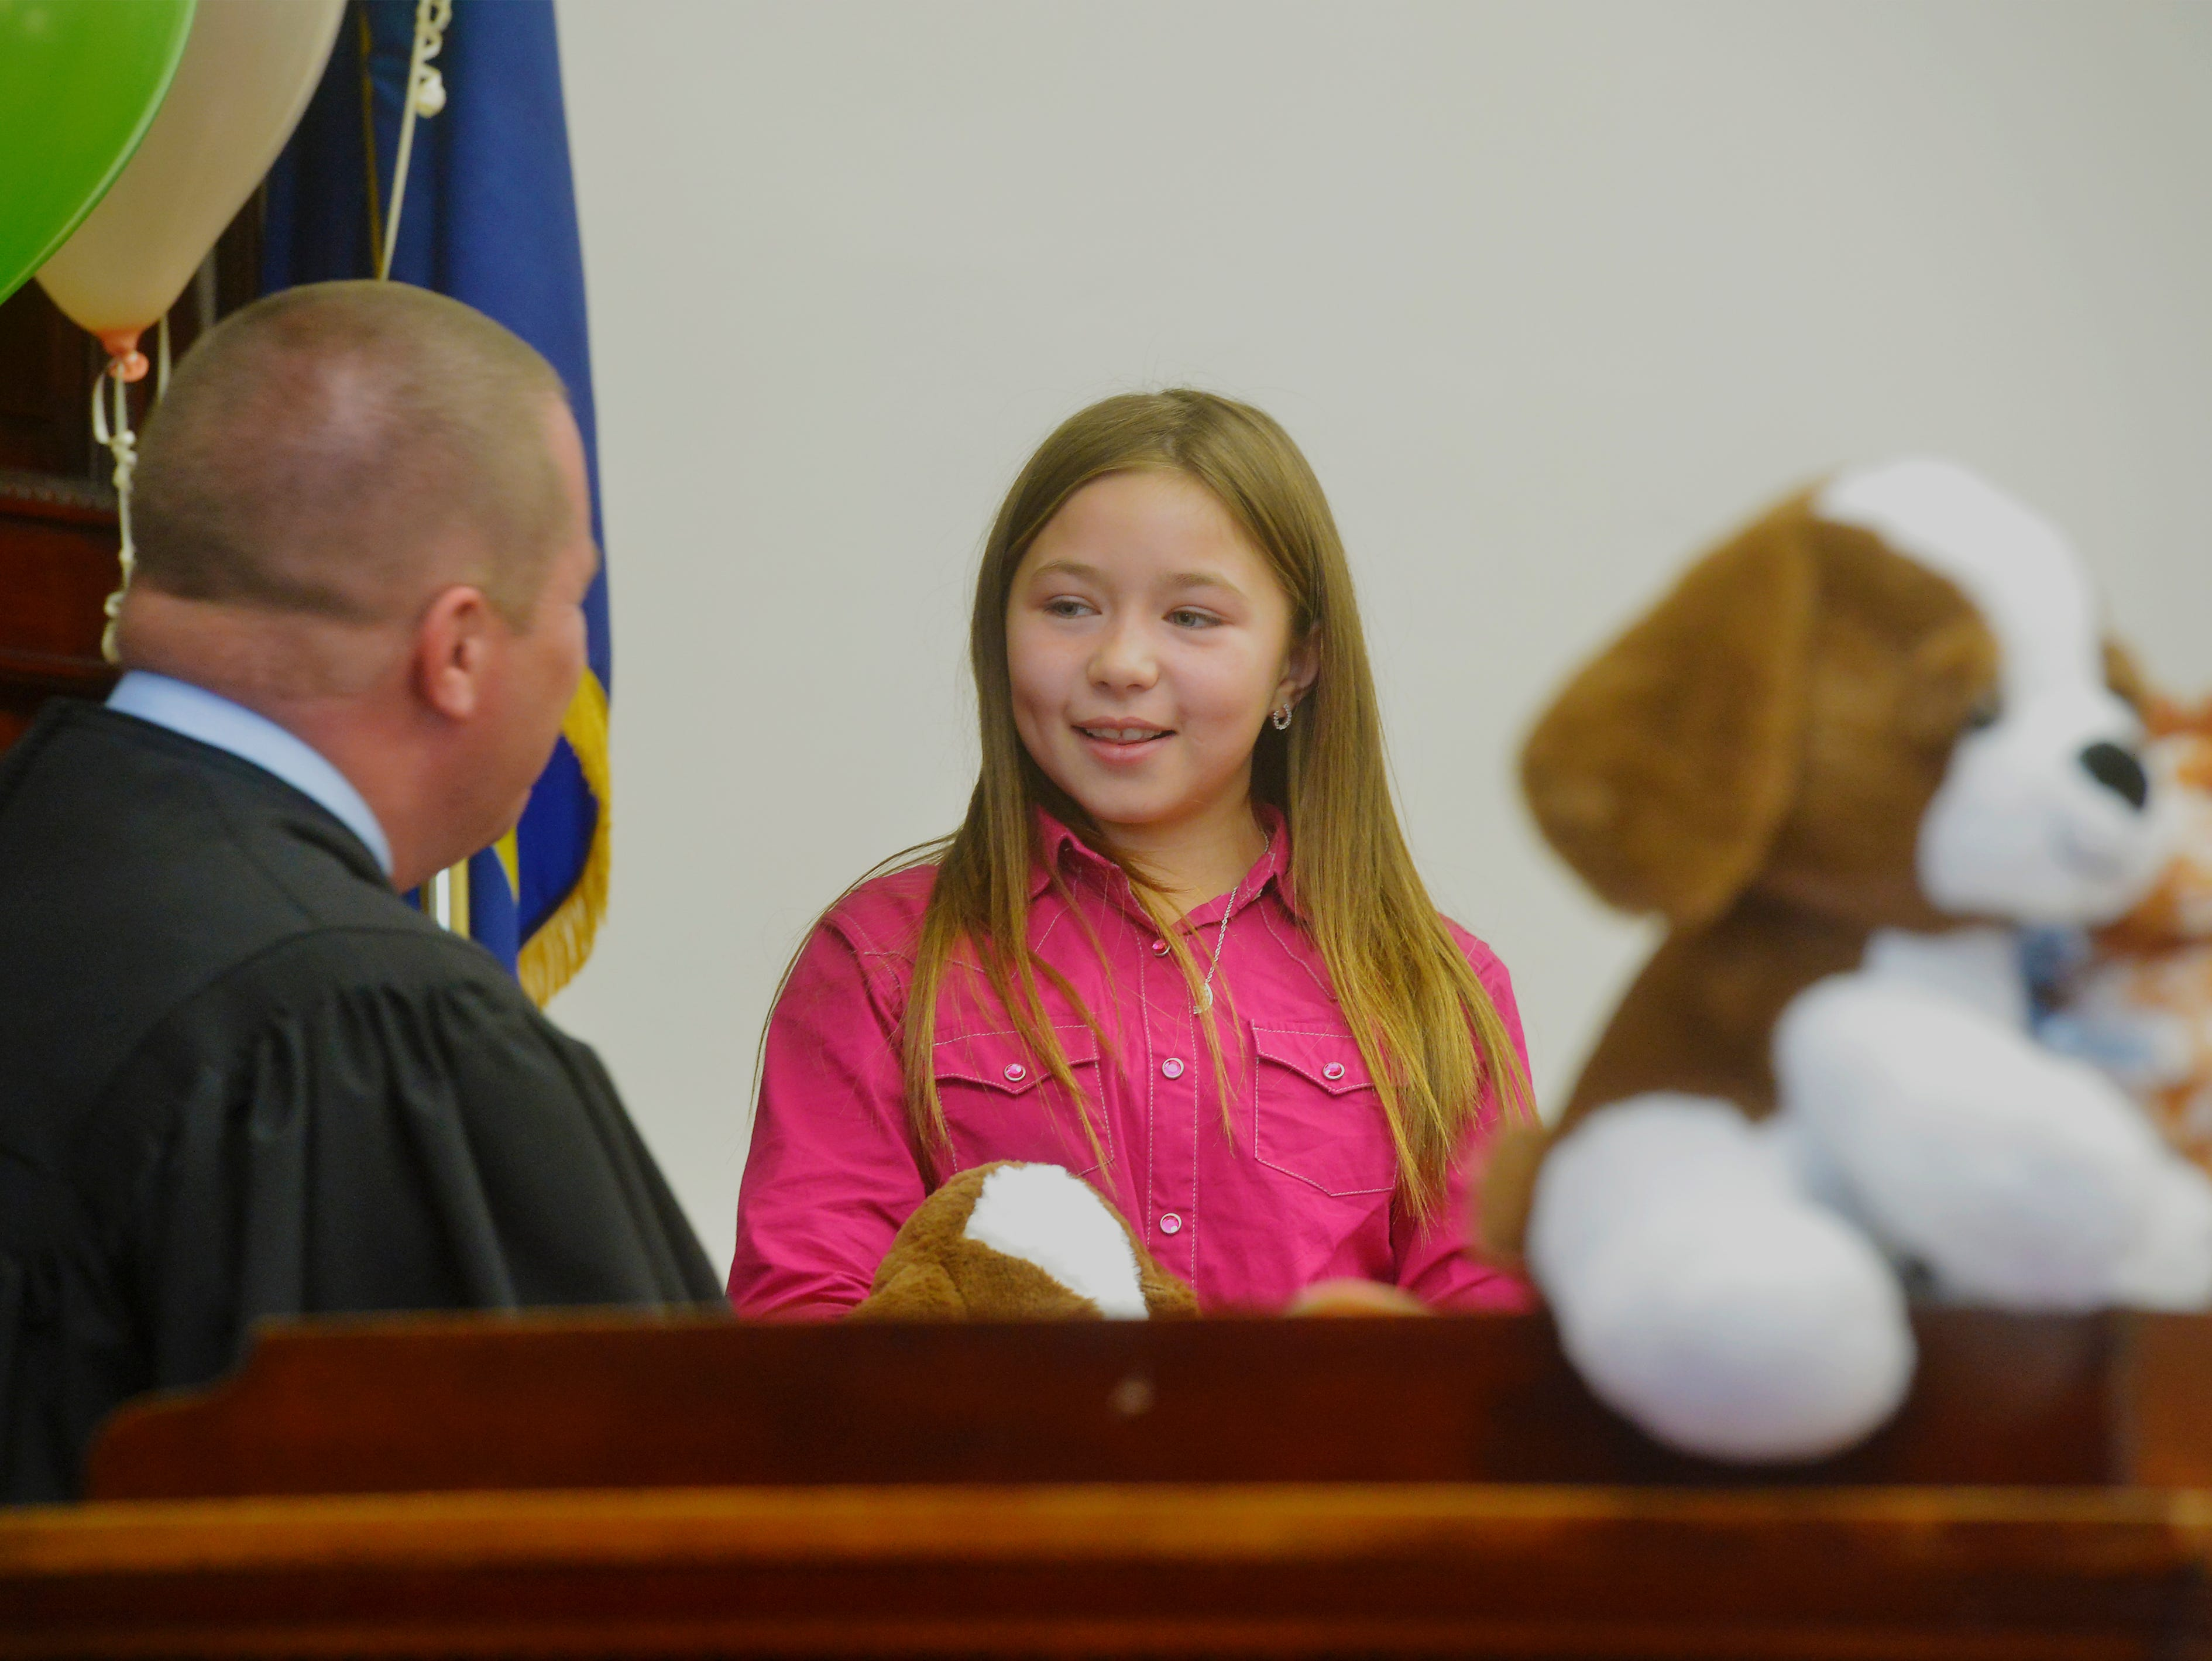 Nikki Hartwell, age 9, talks with judge Greg Pinski, who finalized her adoption by Kelly and Tasha Hartwell of Sweetgrass, Friday afternoon during the Great Falls Adoption Day celebration at the Cascade County Courthouse.